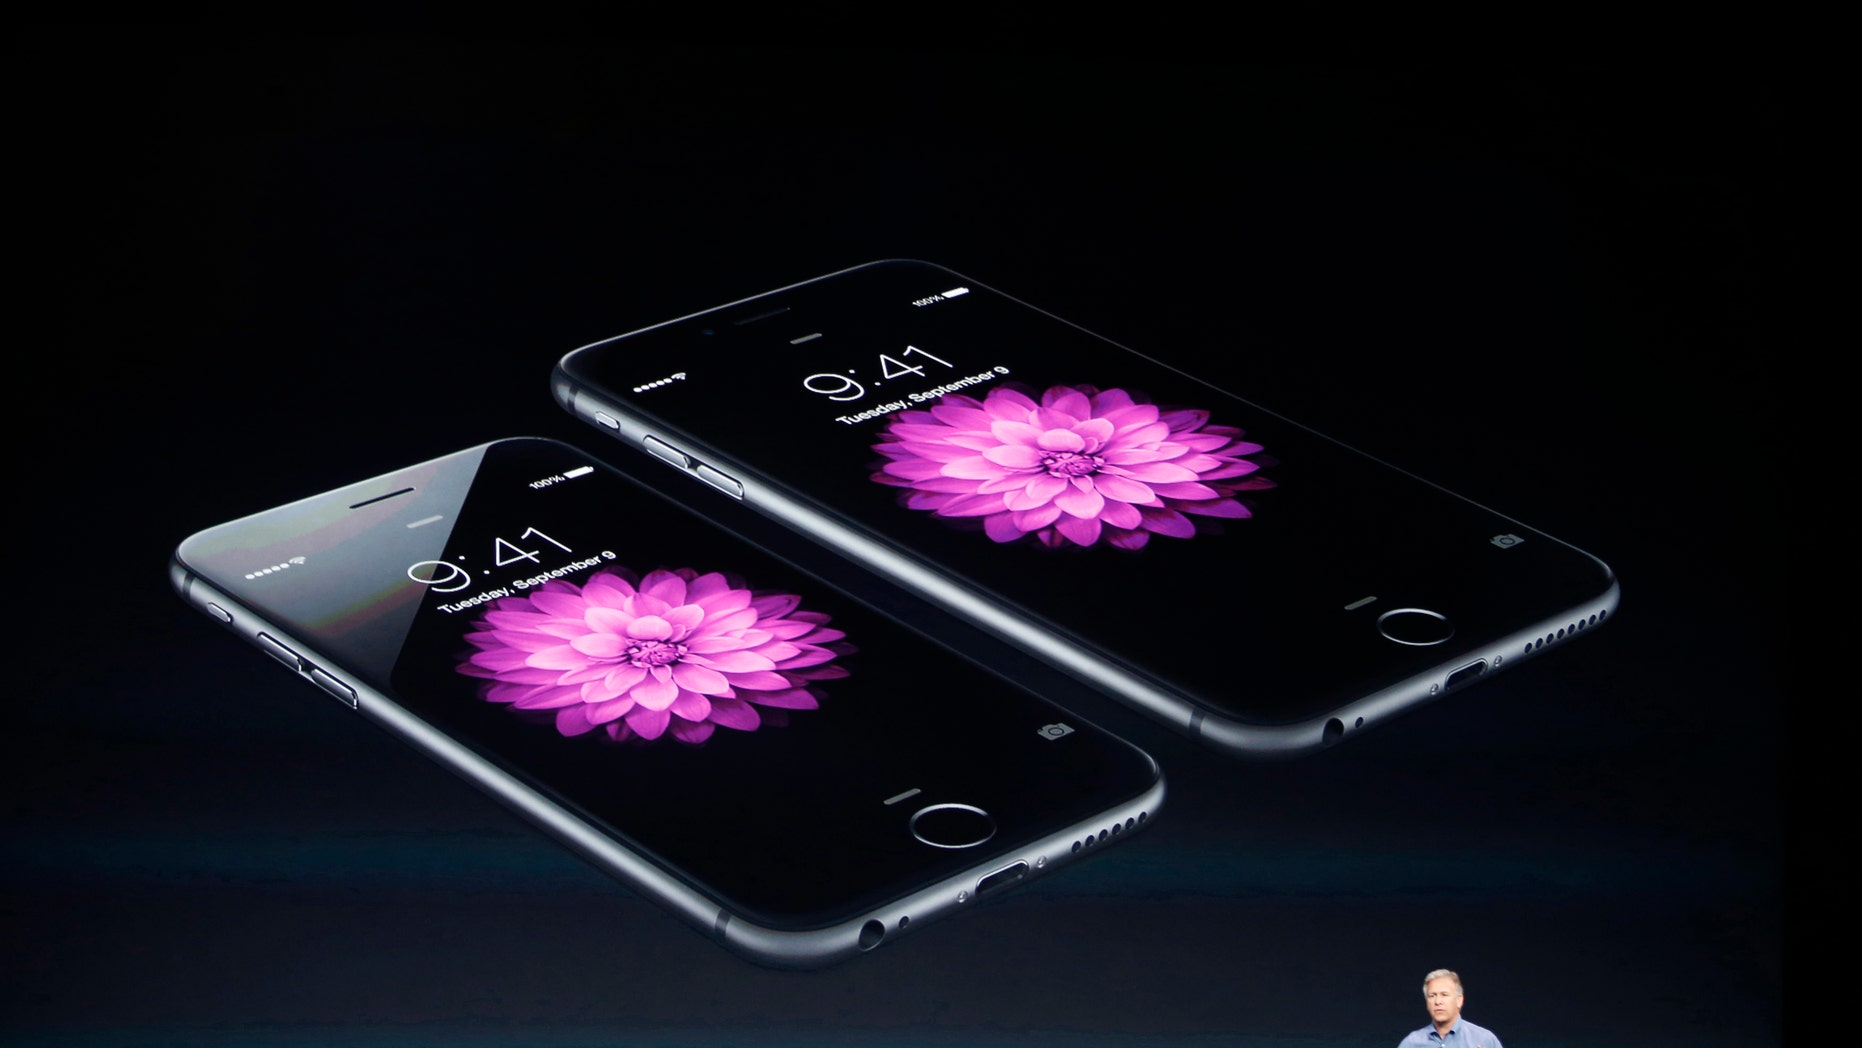 Phil Schiller, Senior Vice President at Apple, speaks about the iPhone 6 (foreground) and the iPhone 6 Plus during an Apple event at the Flint Center in Cupertino, Calif., Sept. 9, 2014.